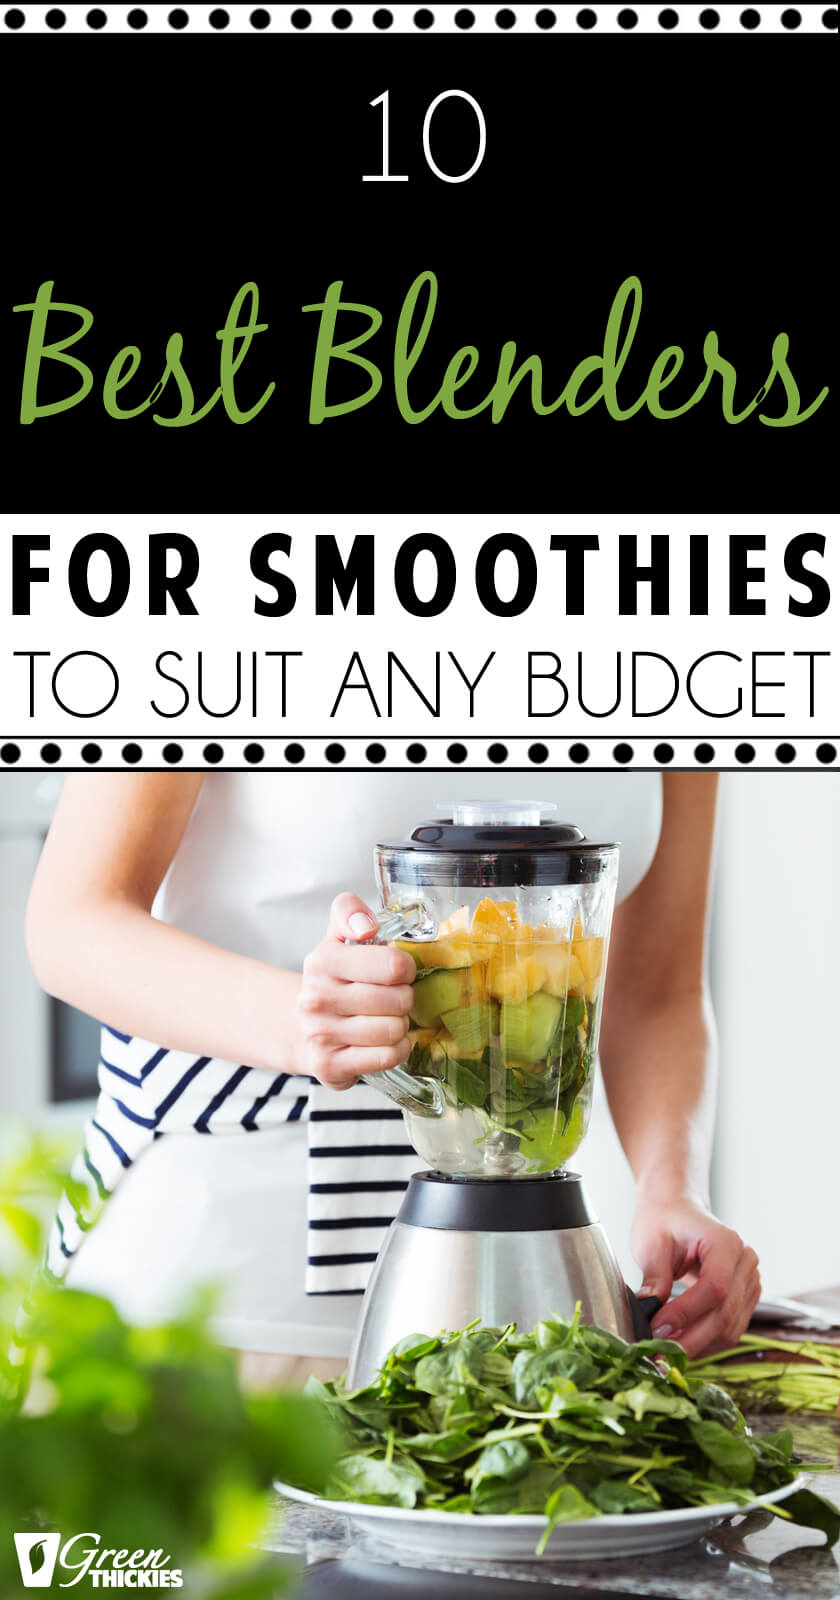 Regardless of  budget, you will find a smoothie maker to suit you in this list of the 10 best blenders on the market to date.Buy a blender you can afford.Number 1 is the one I use every day because...#greenthickies #smoothie #blender #smoothieblender #bestblender